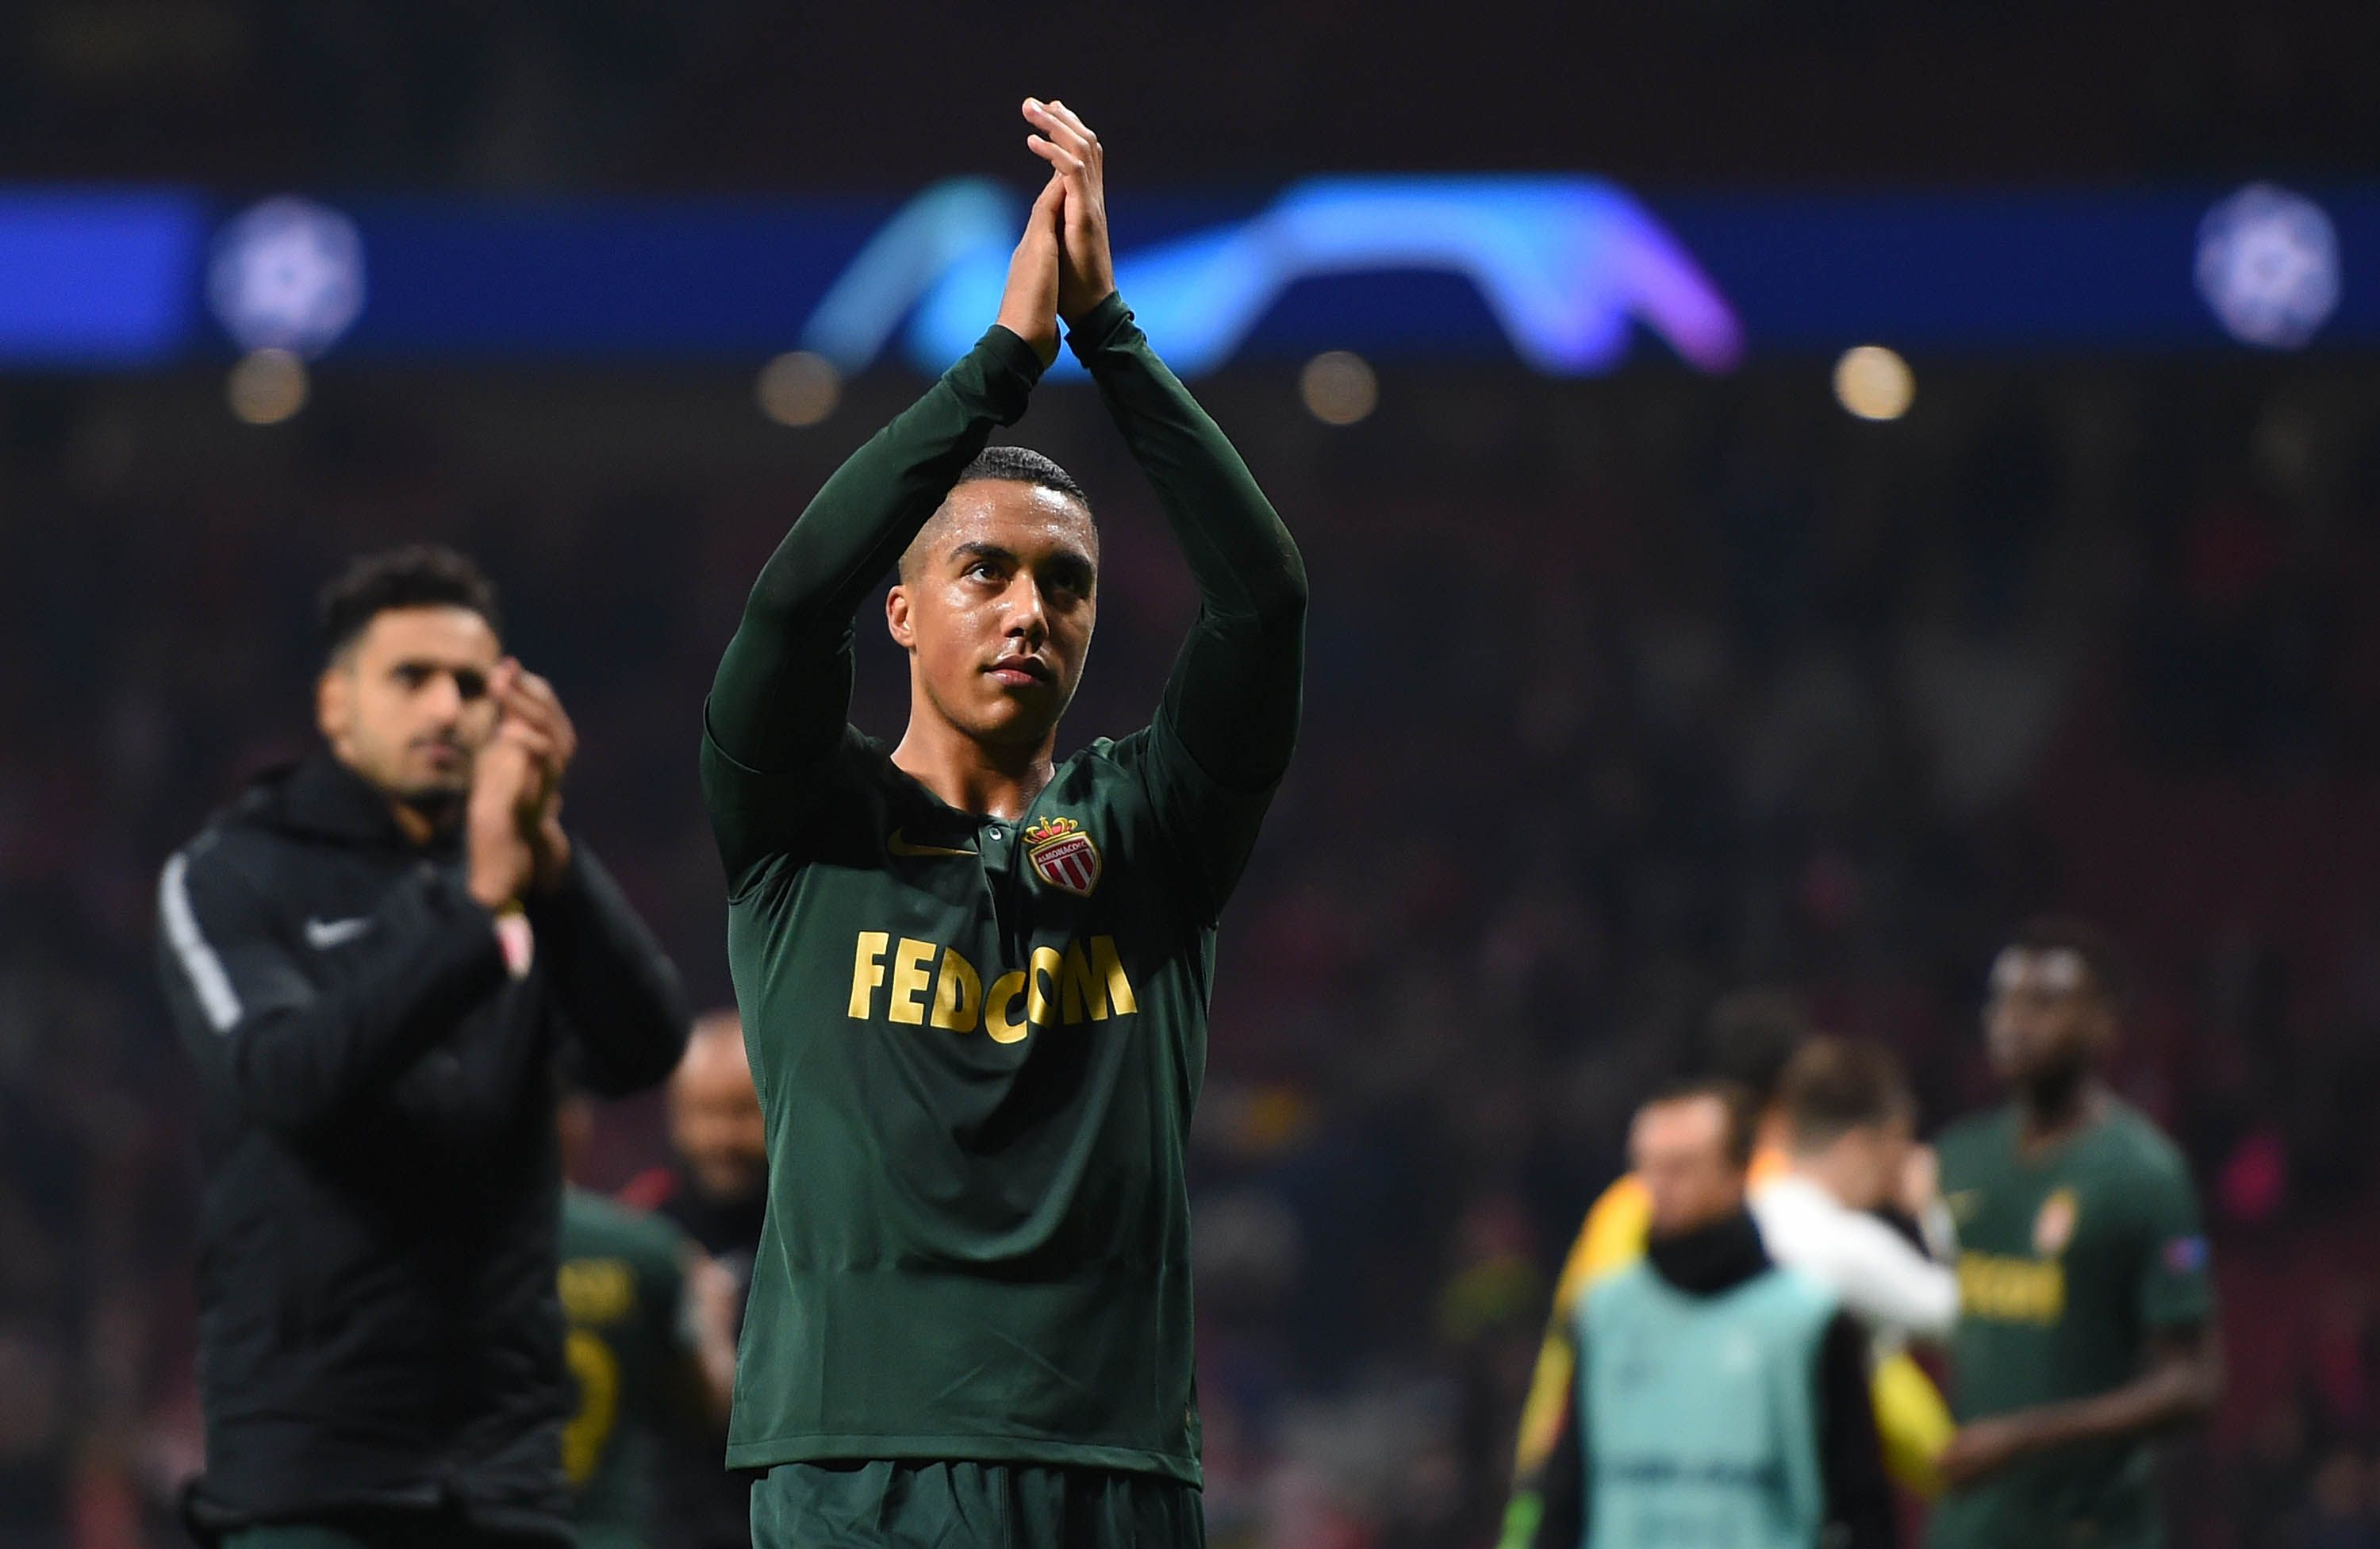 Youri Tielemans Transfer News: 'He's A Good Player